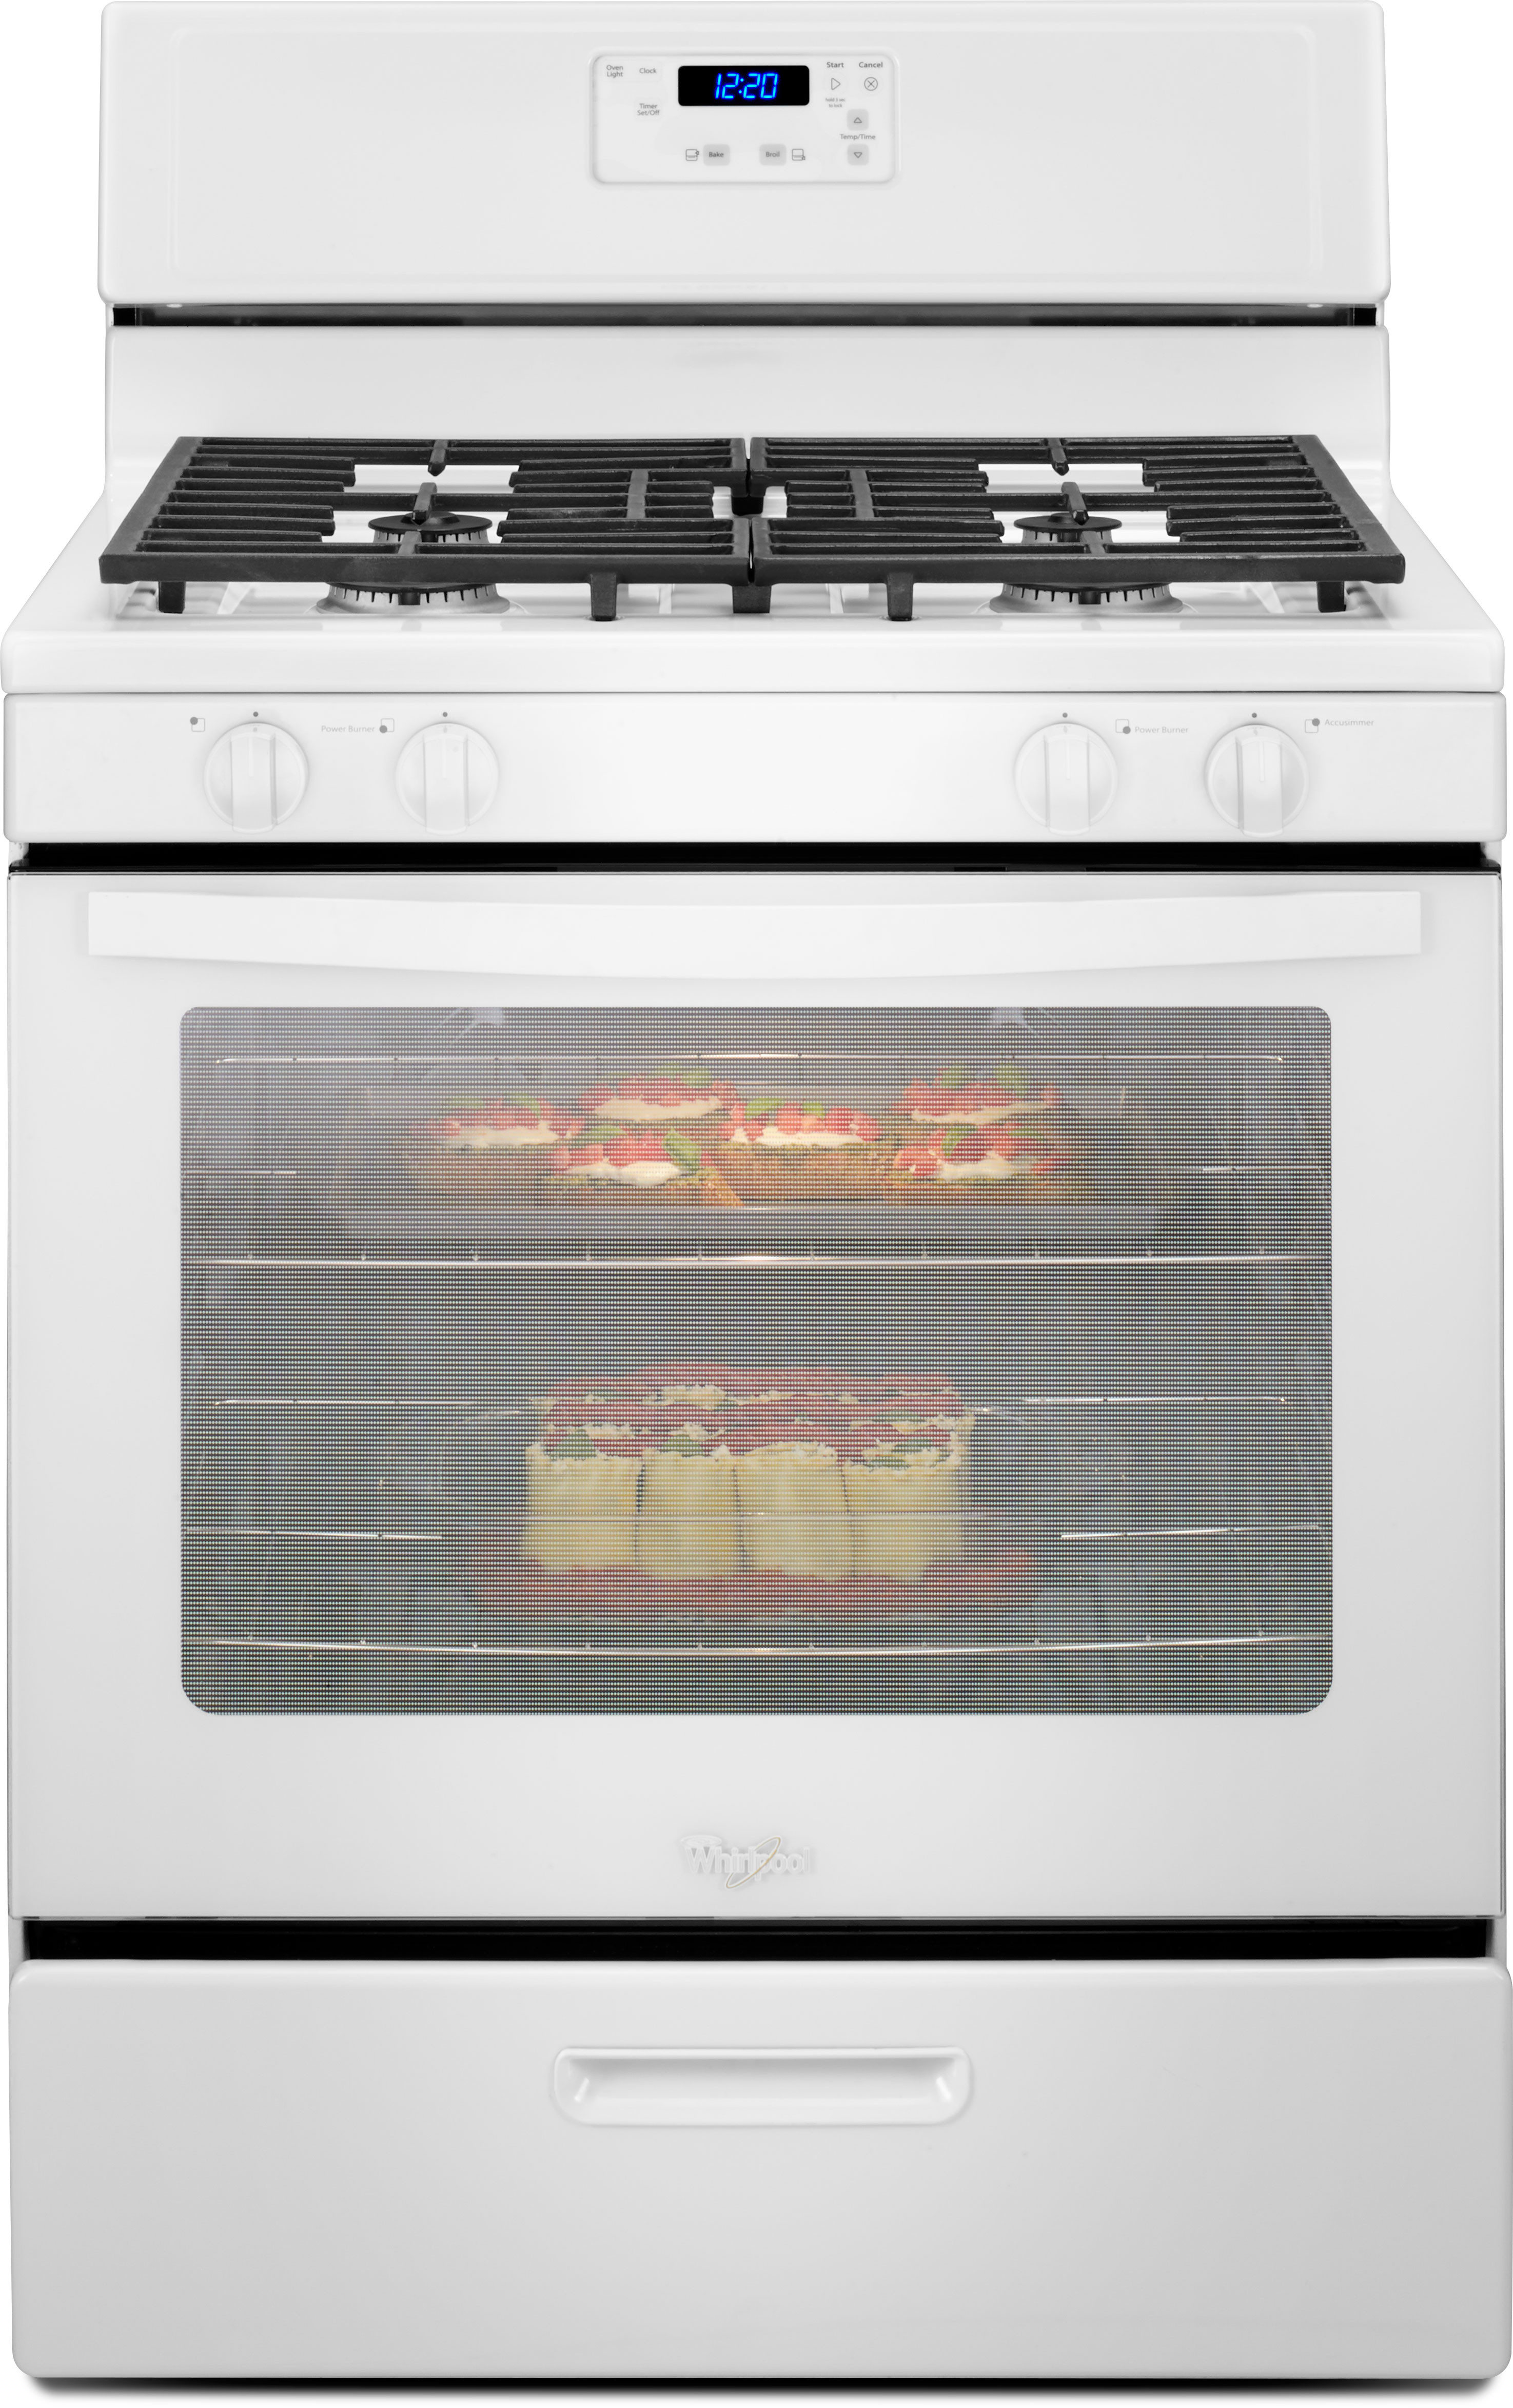 Whirlpool Wfg320m0bw 30 Inch Freestanding Gas Range With 5